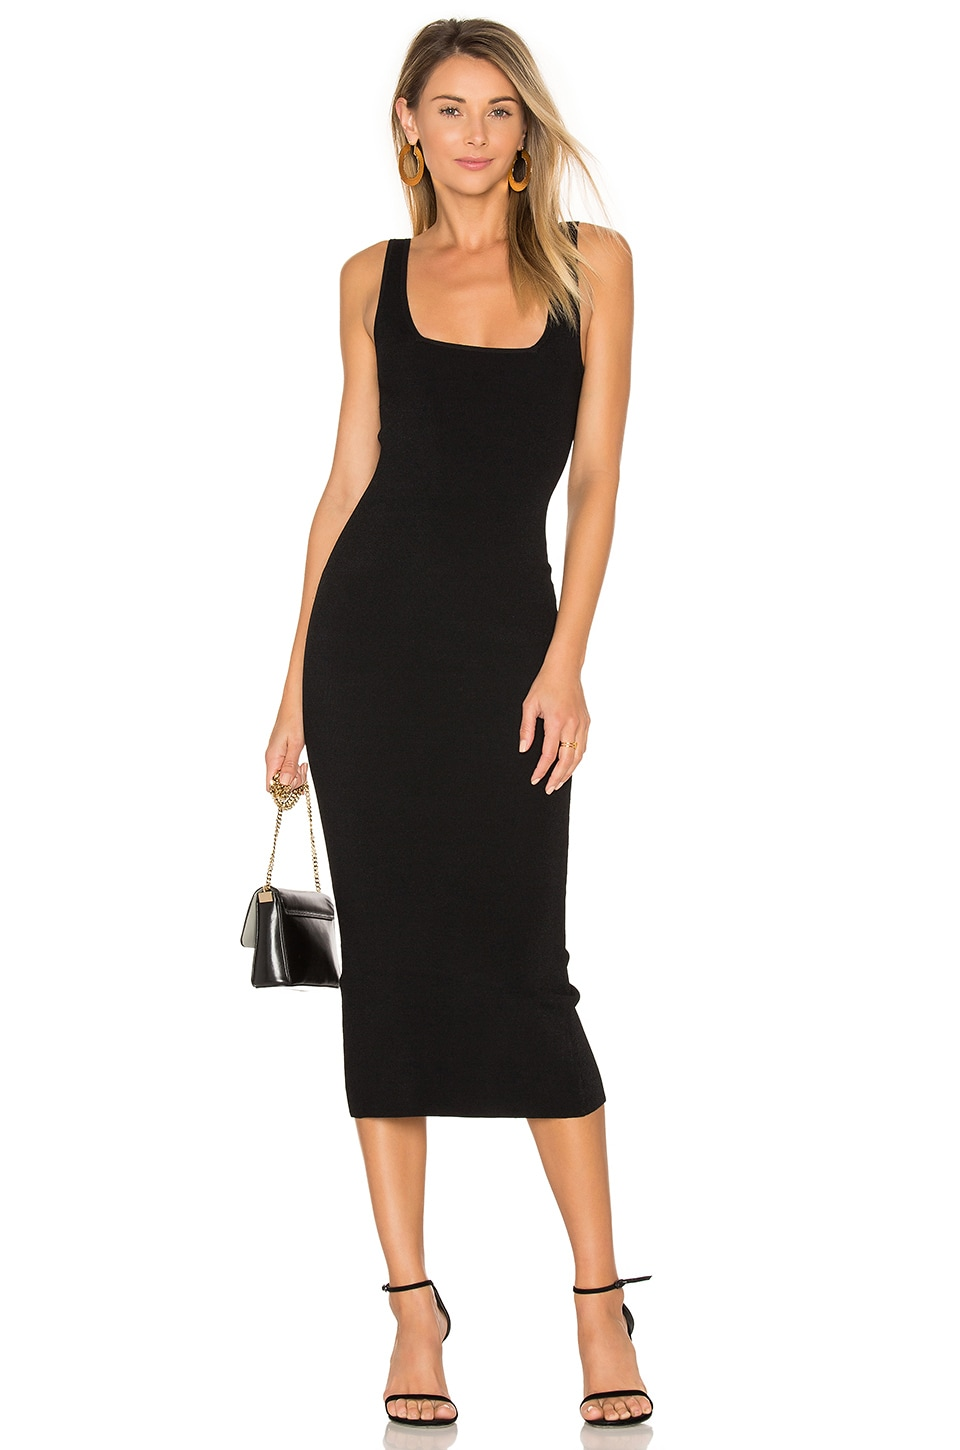 Autumn Cashmere Midi Square Neck Dress in Black